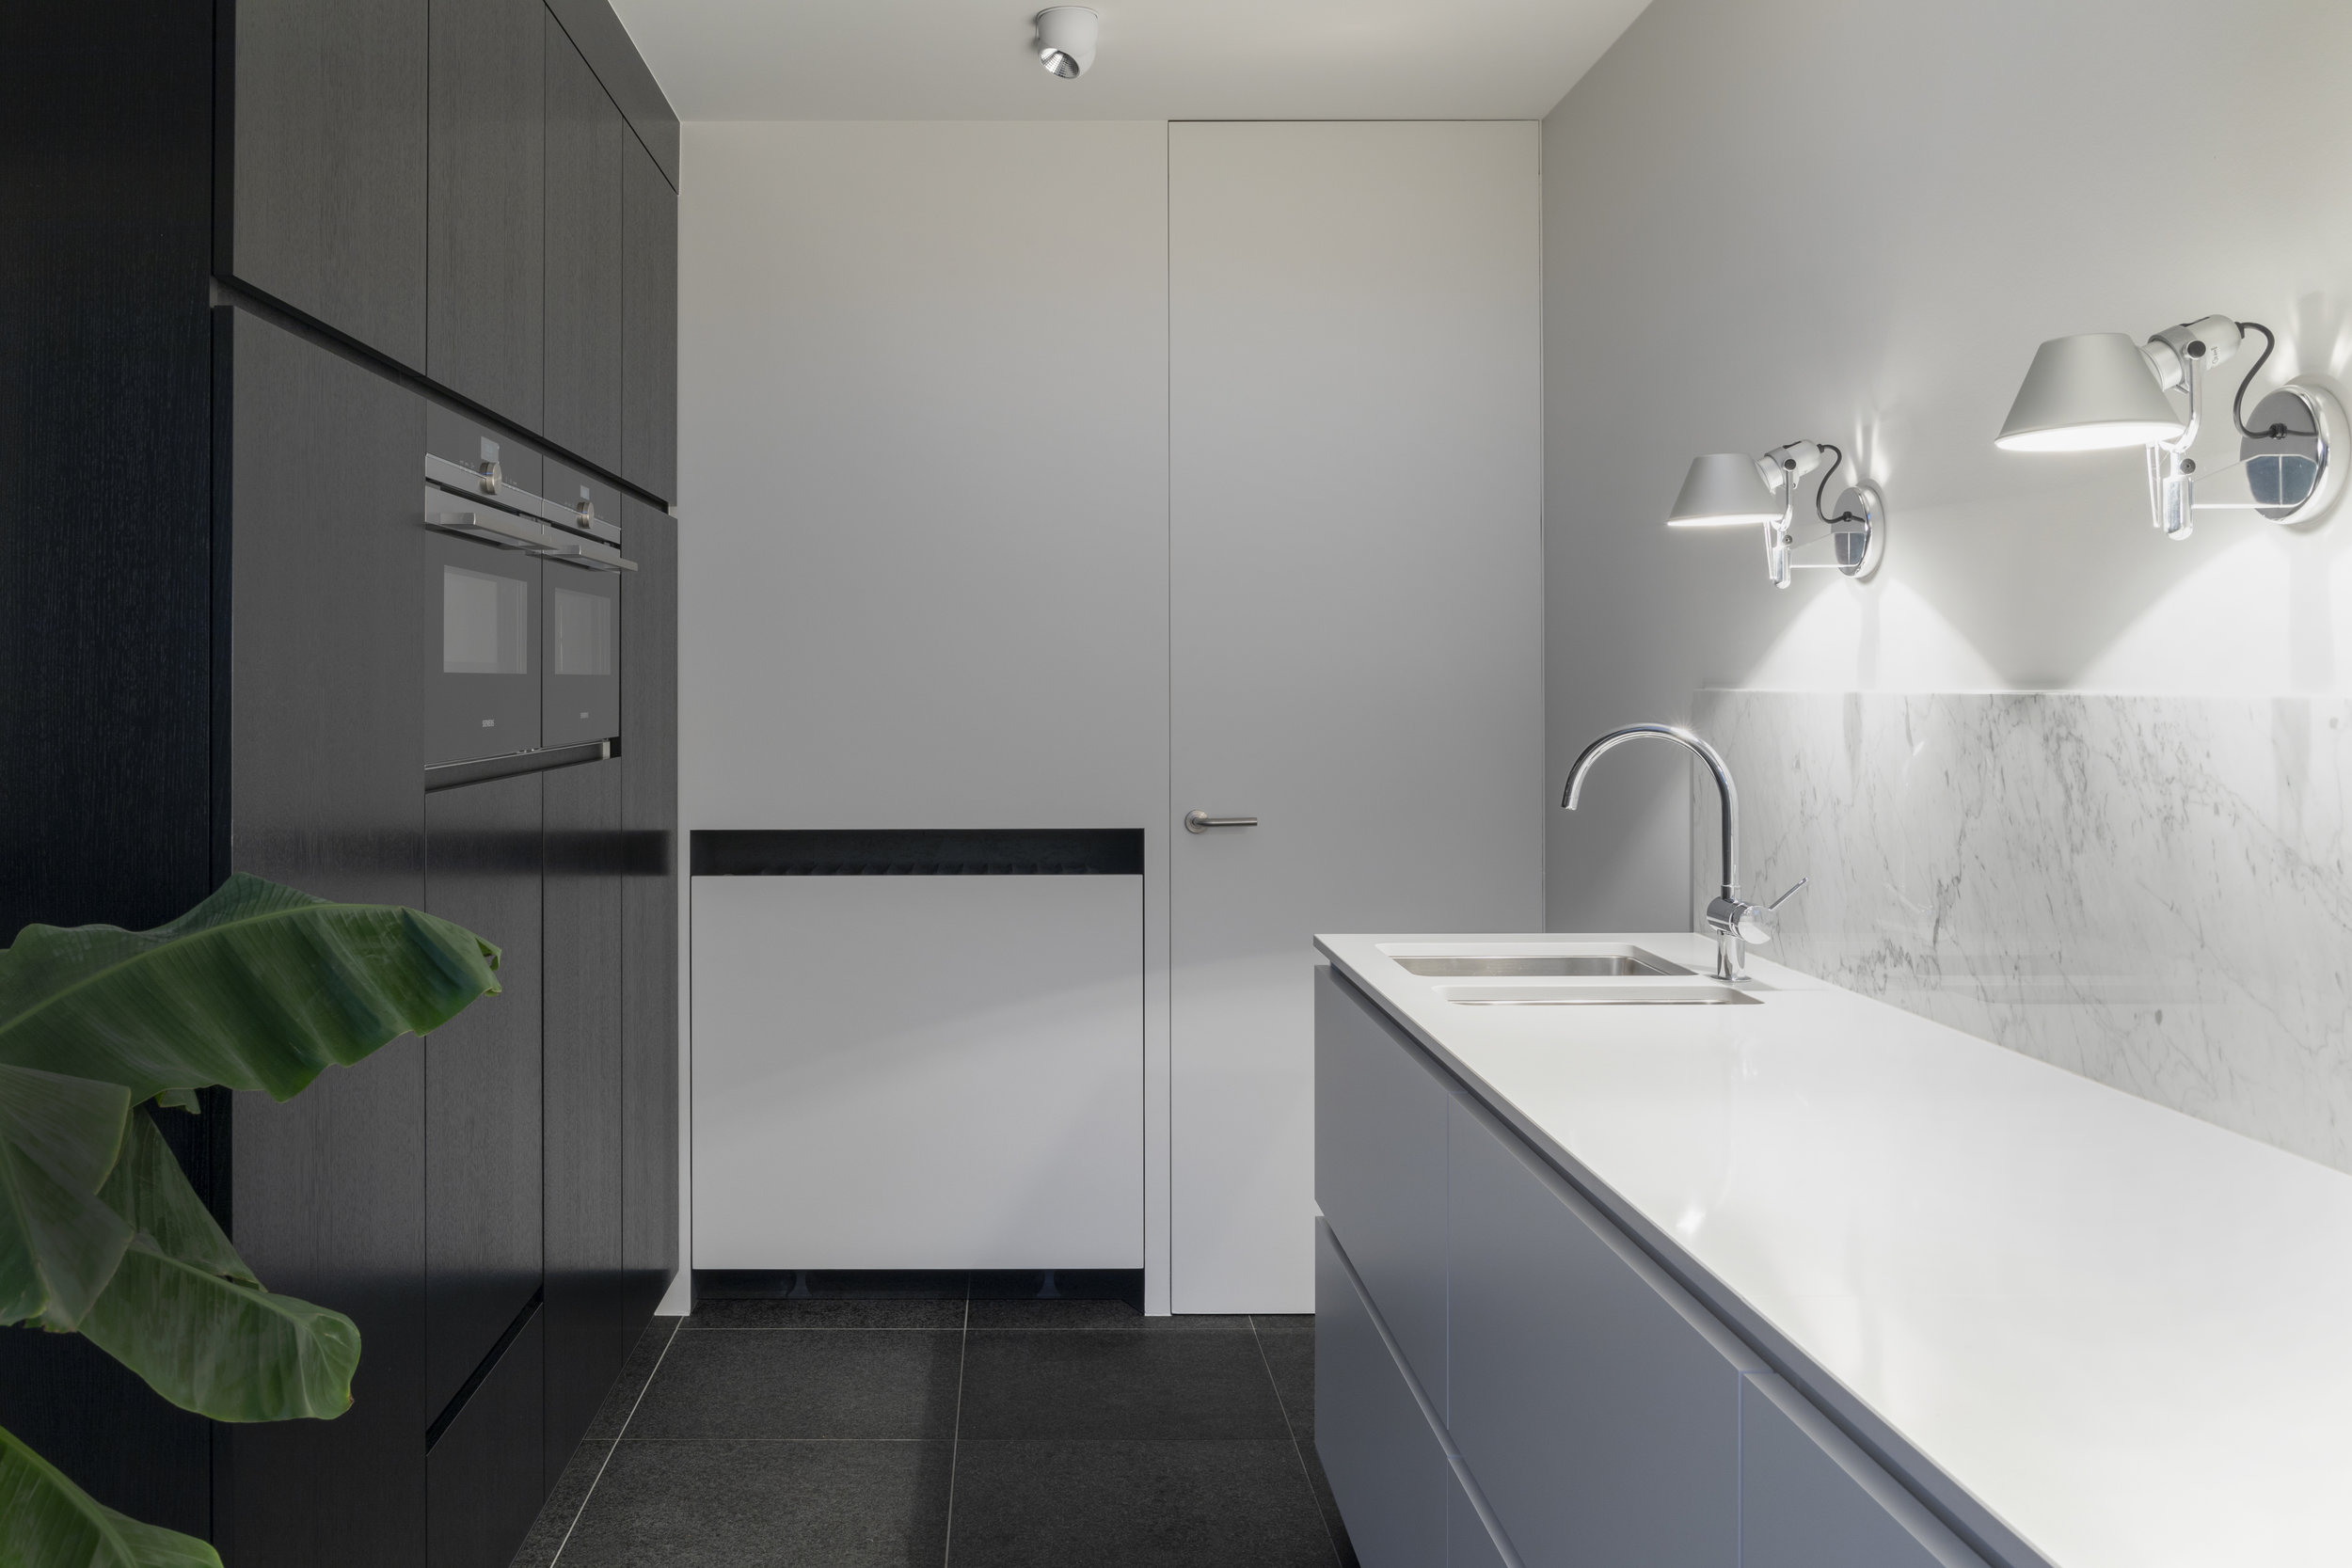 A simple WHITE KITCHEN DESIGN IS ELEVATED THROUGH CONTRAST WITH BLACK APPLiaNCES AND DARK CABINETS.